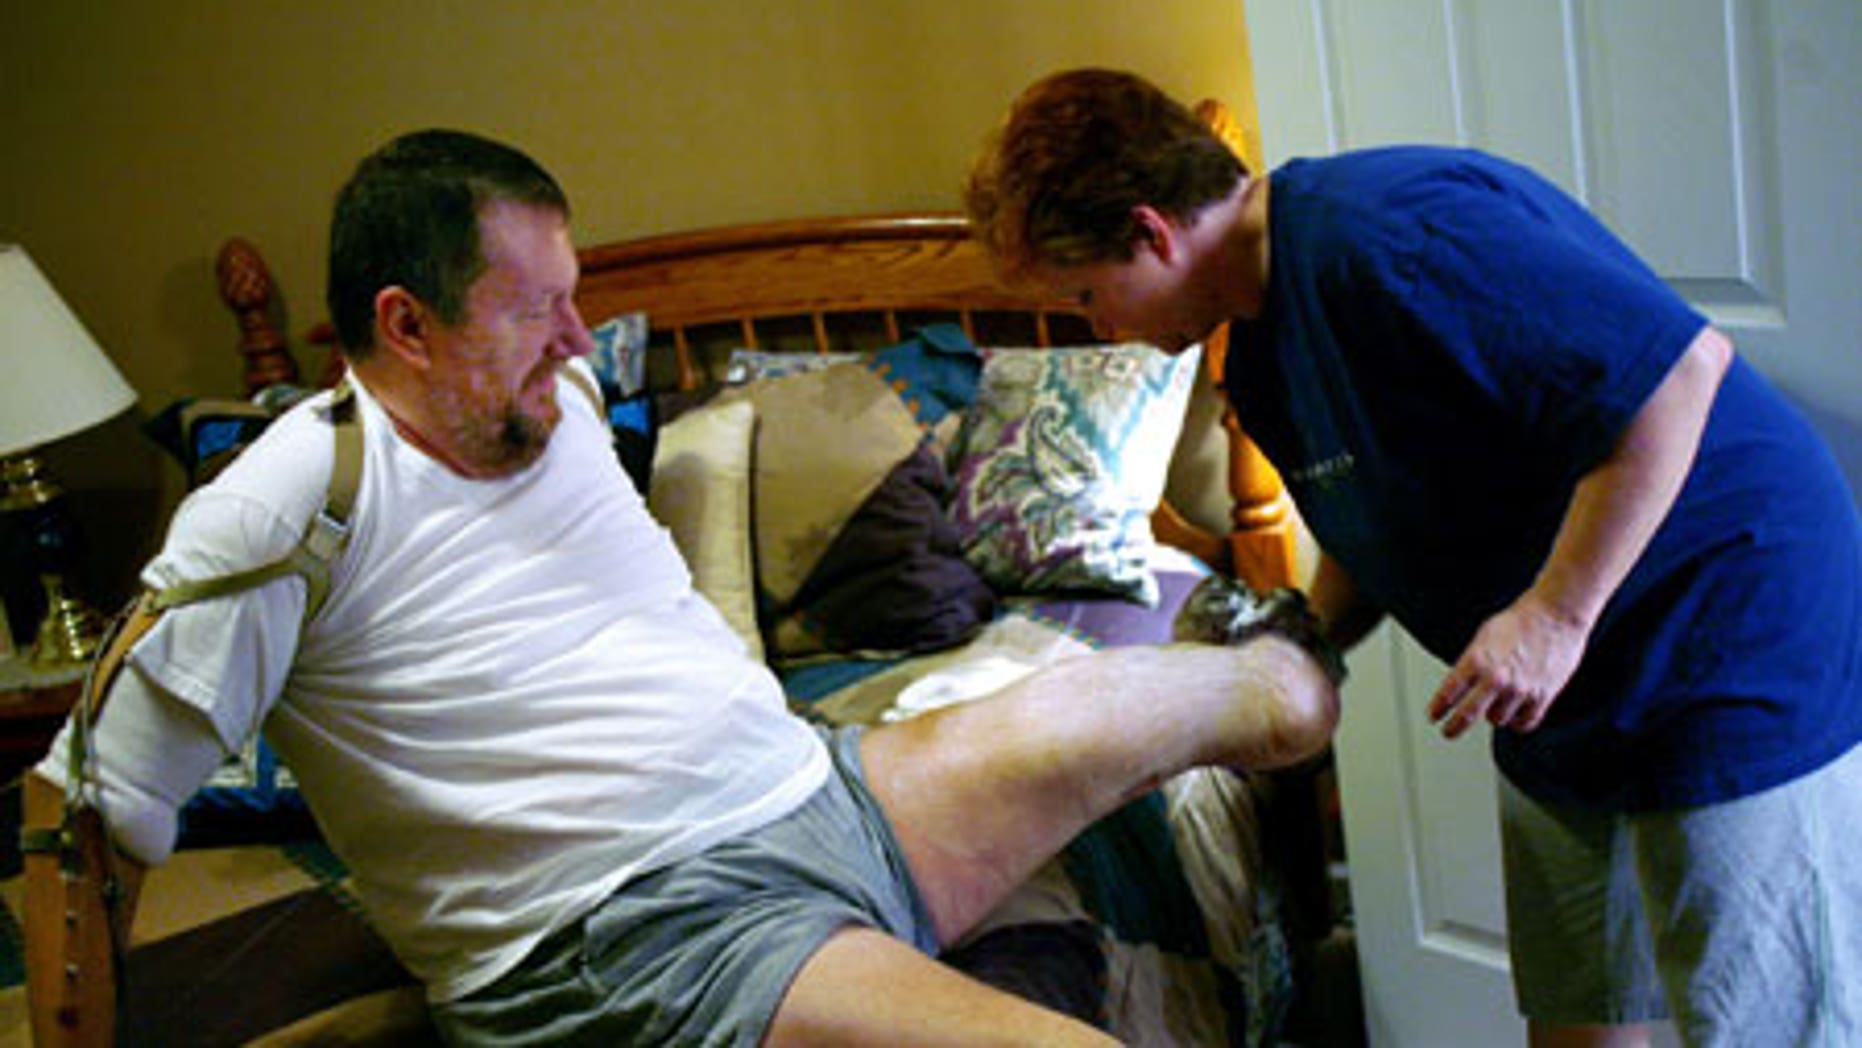 Feb. 4, 2009: Valarie Kepner washes her husband, Jeff Kepner's legs following a shower.